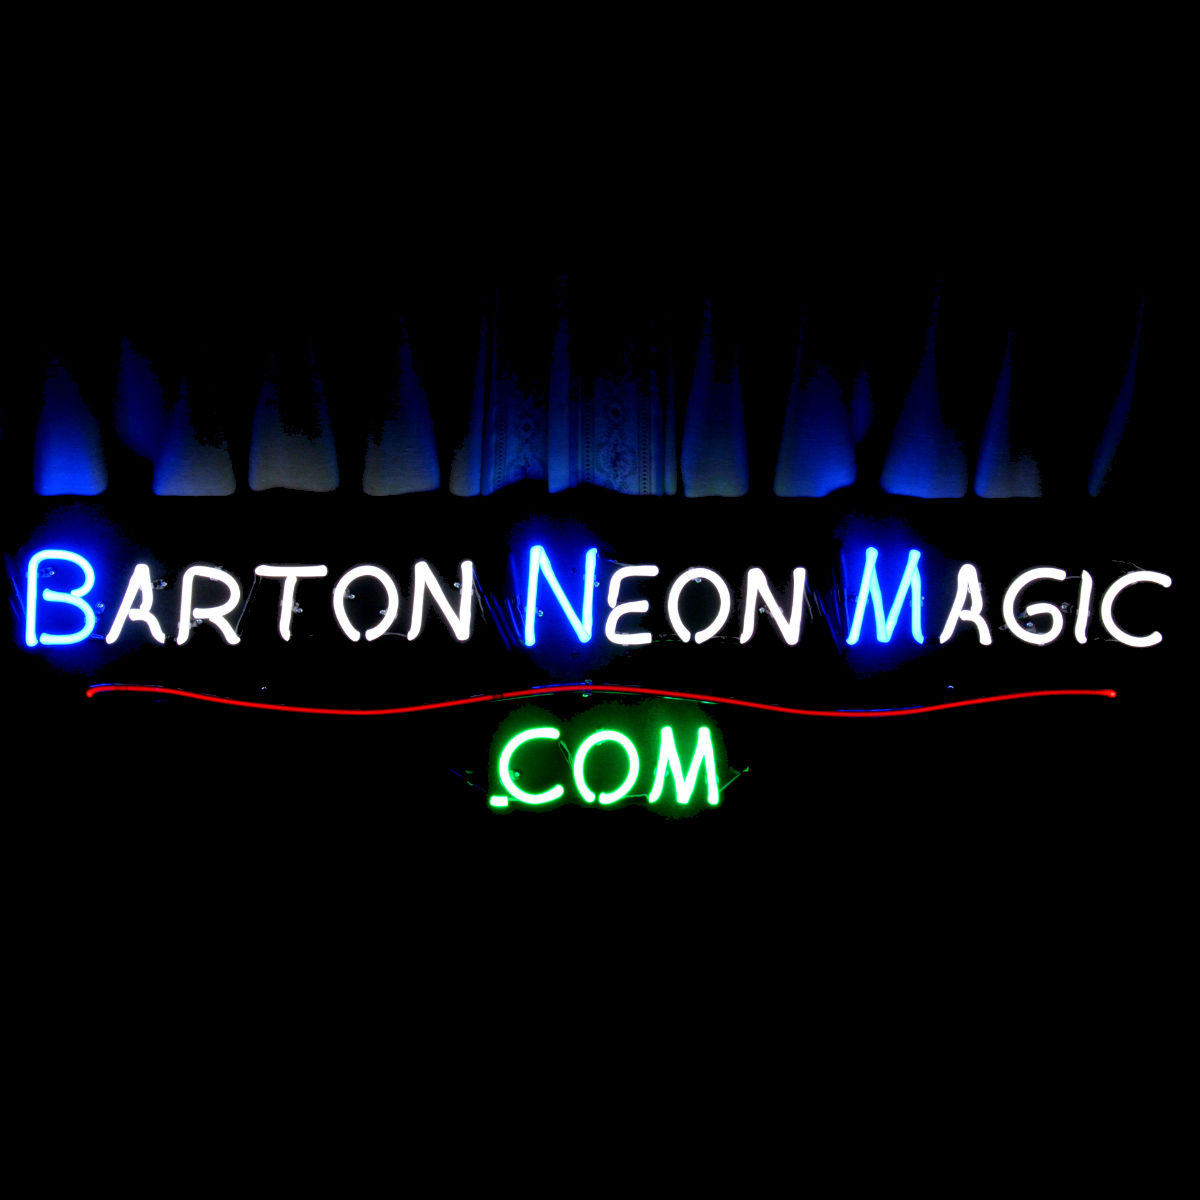 BartonNeonMagic.com - Fine Designer Hand-blown Neon Lighting by John Barton - Famous USA Neon Glass Artist